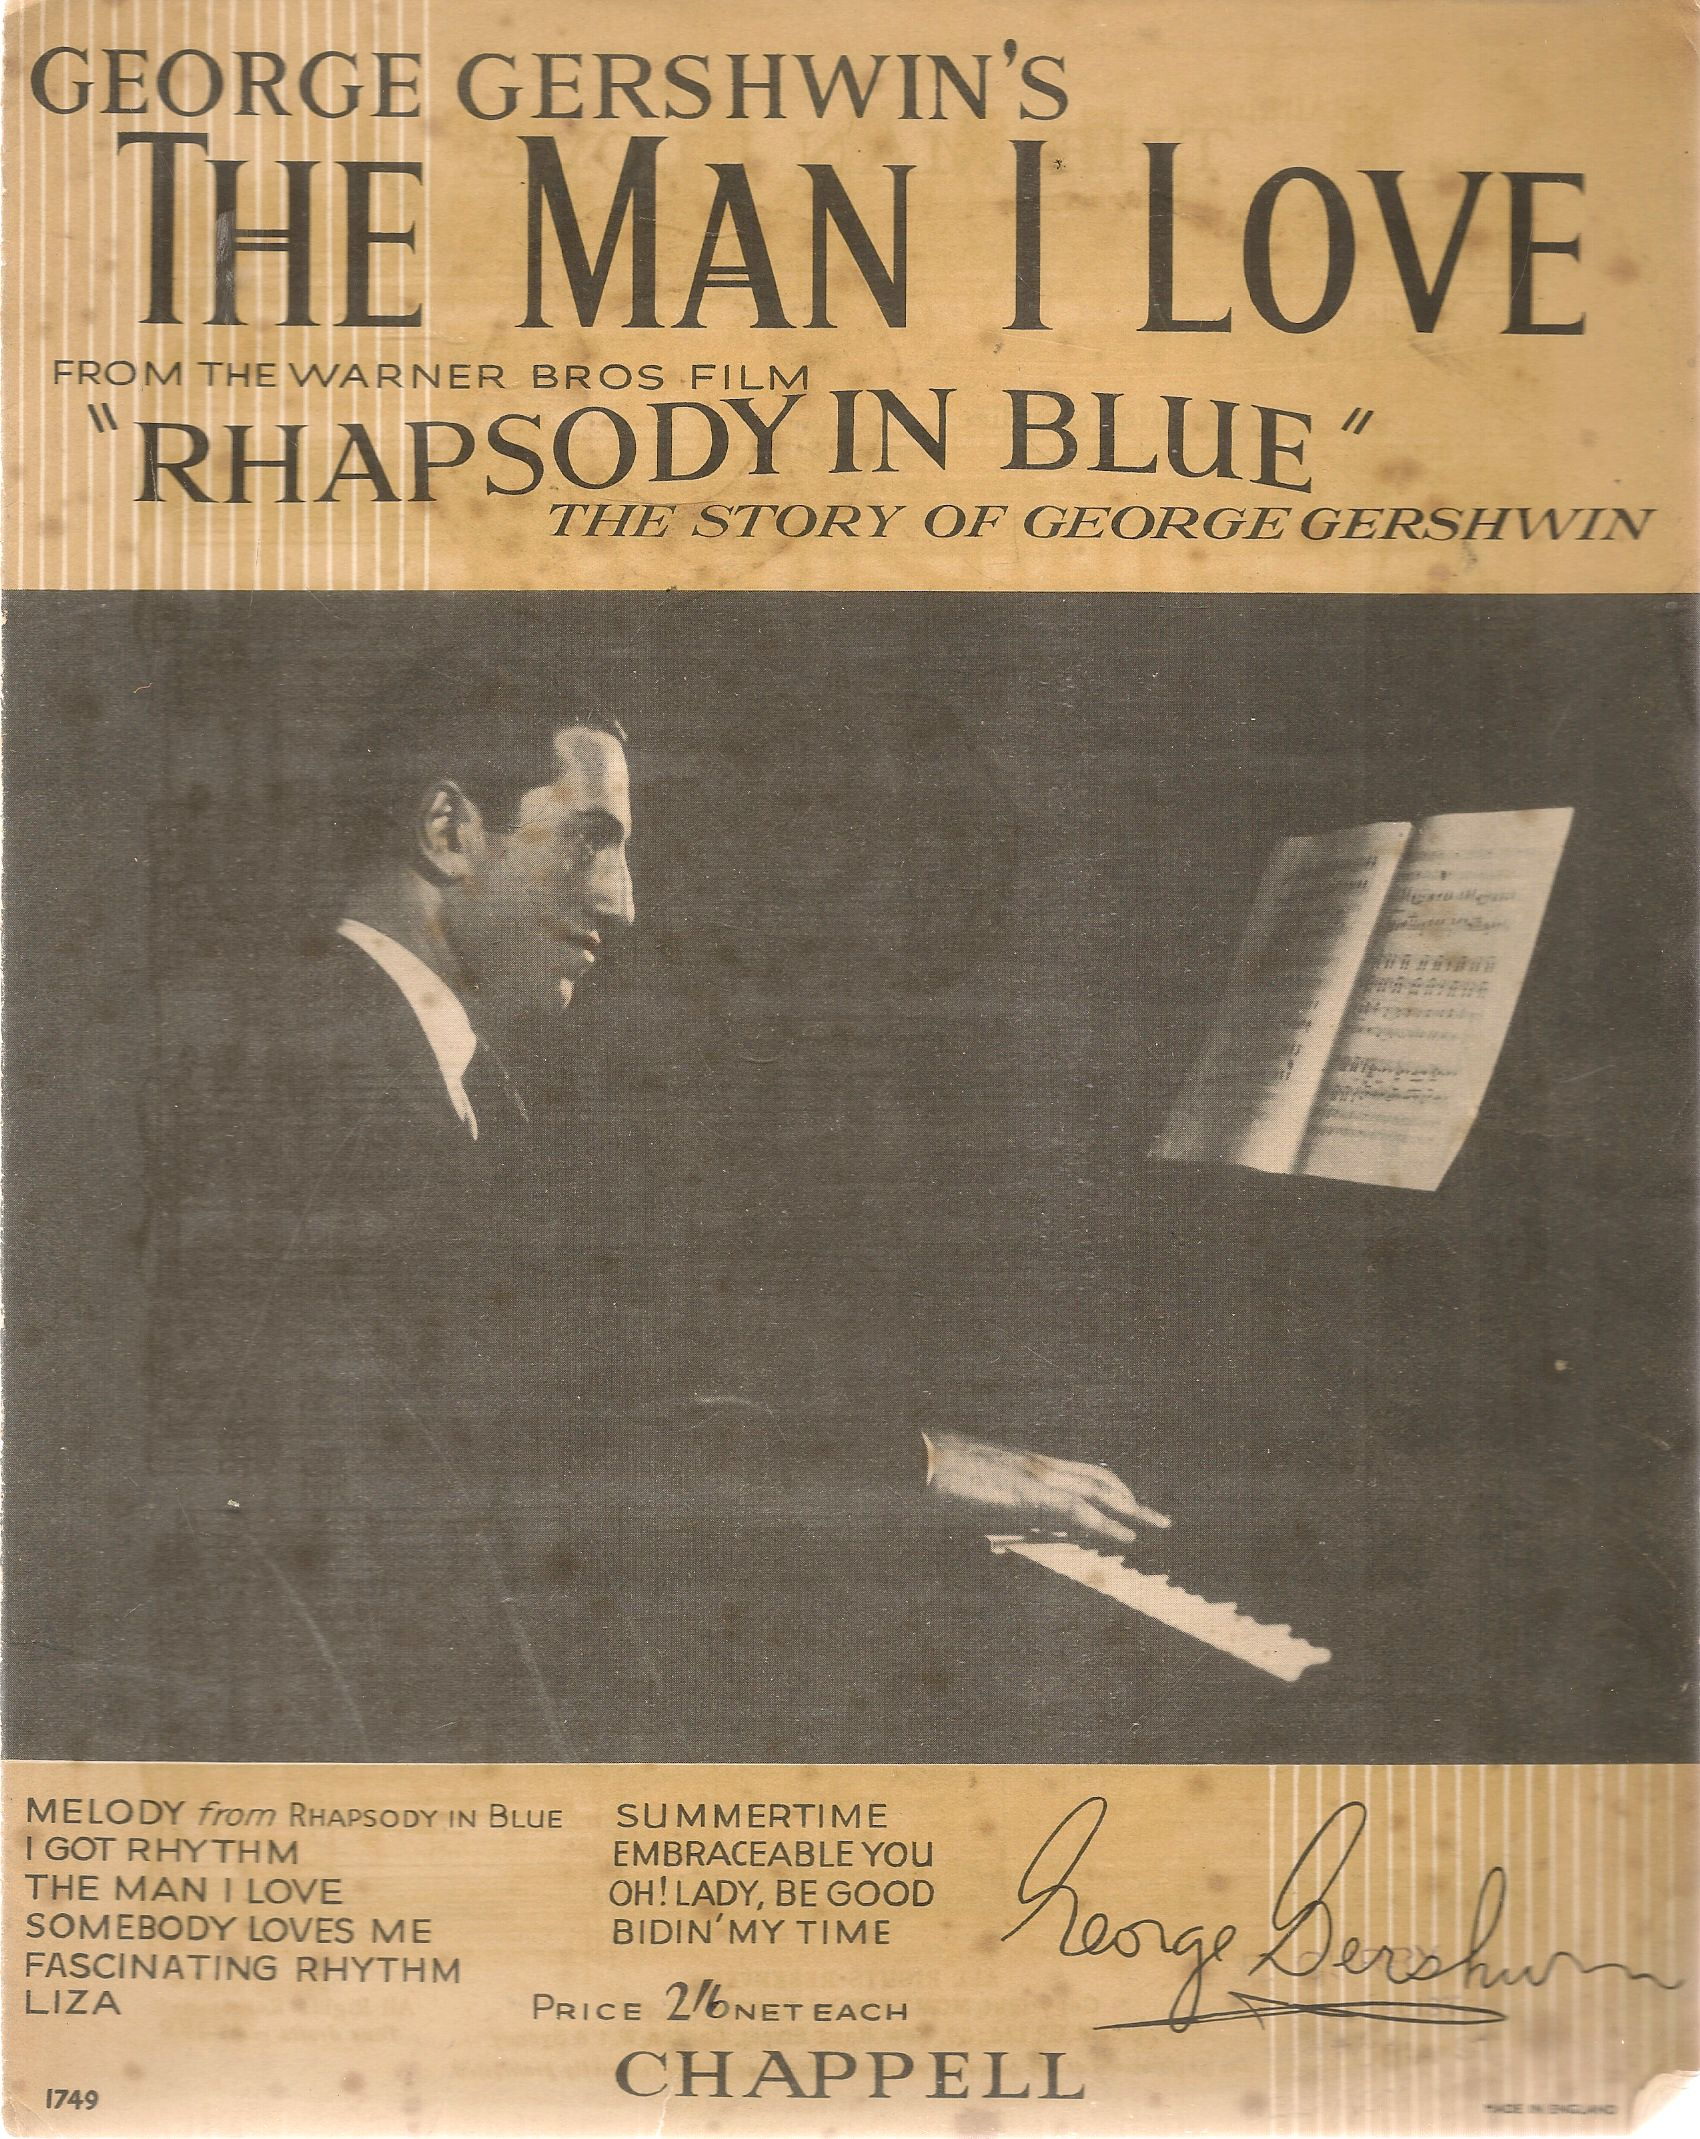 THE MAN I LOVE - GEORGE GERSHWIN - SPARTITO-SHEET MUSIC